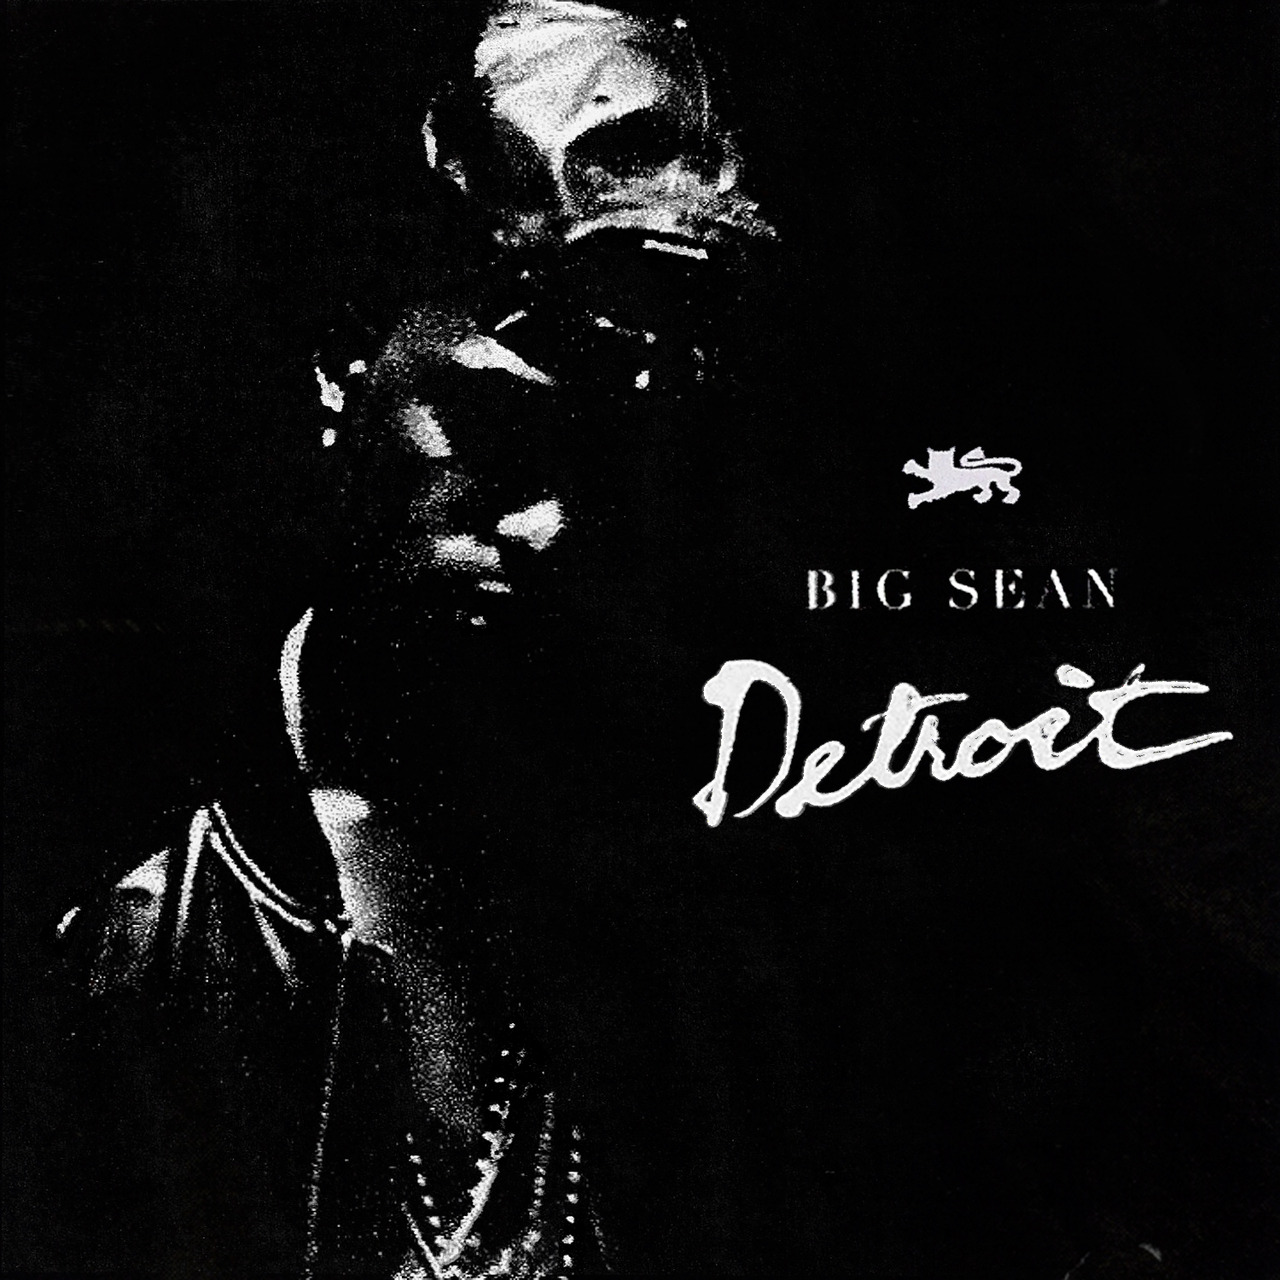 Big sean life should go on (feat. Wale) (detroit mixtape) youtube.